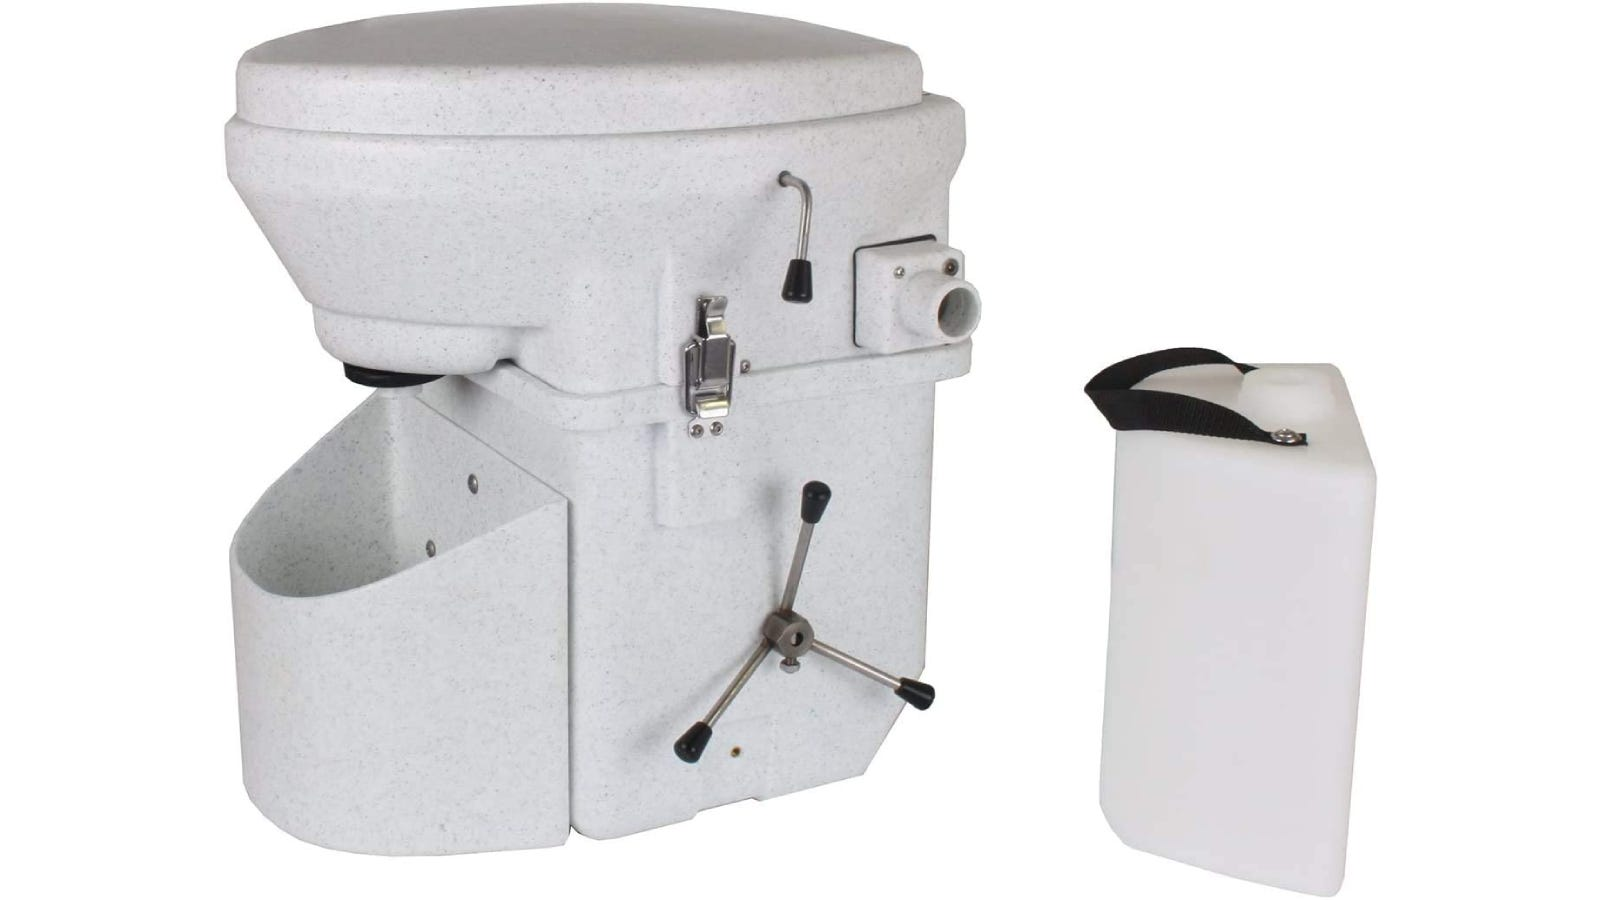 A composting toilet with a spider handle on the side